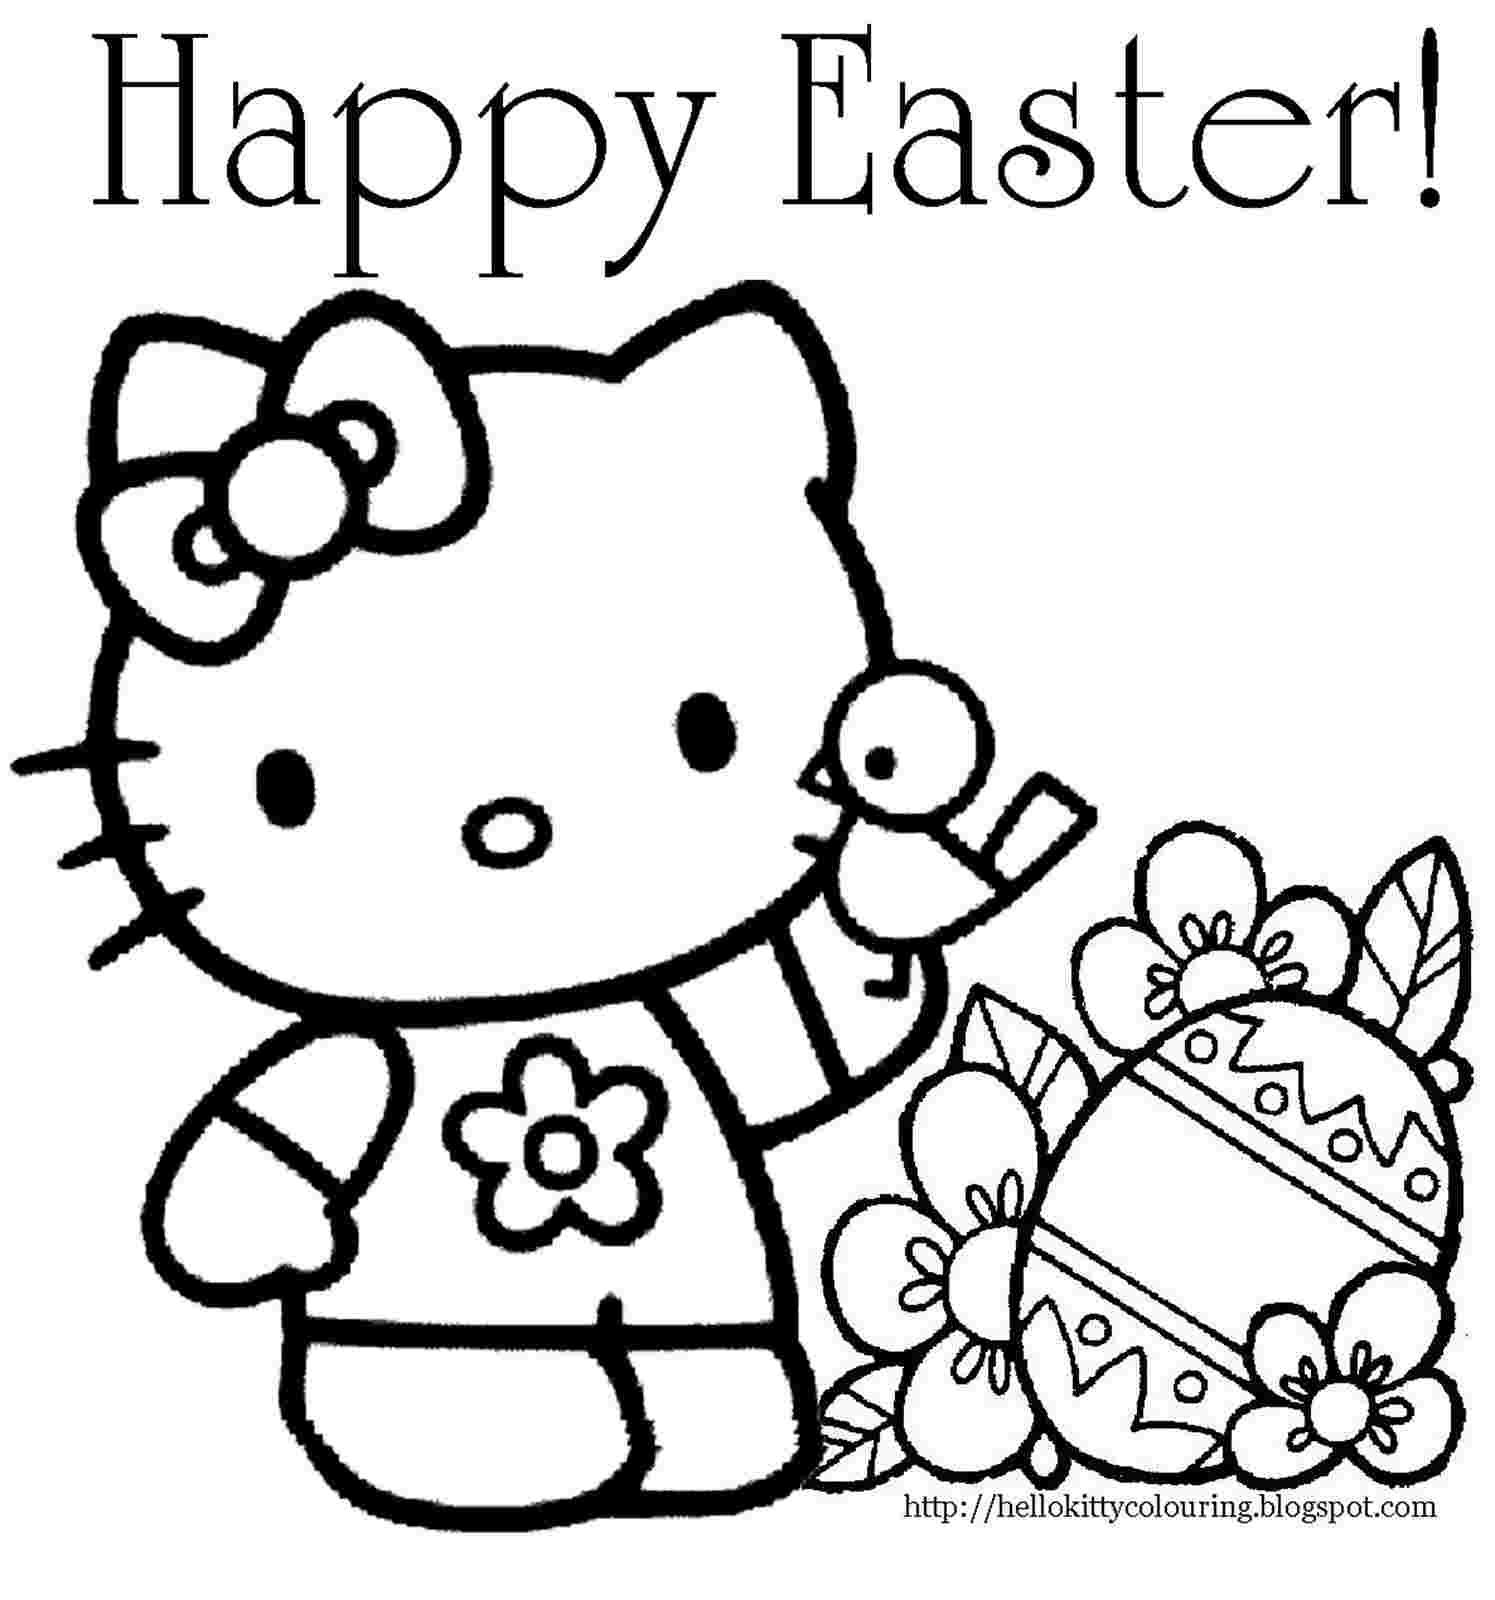 Coloring Festival Easter Printables Coloring Pages More Than 33